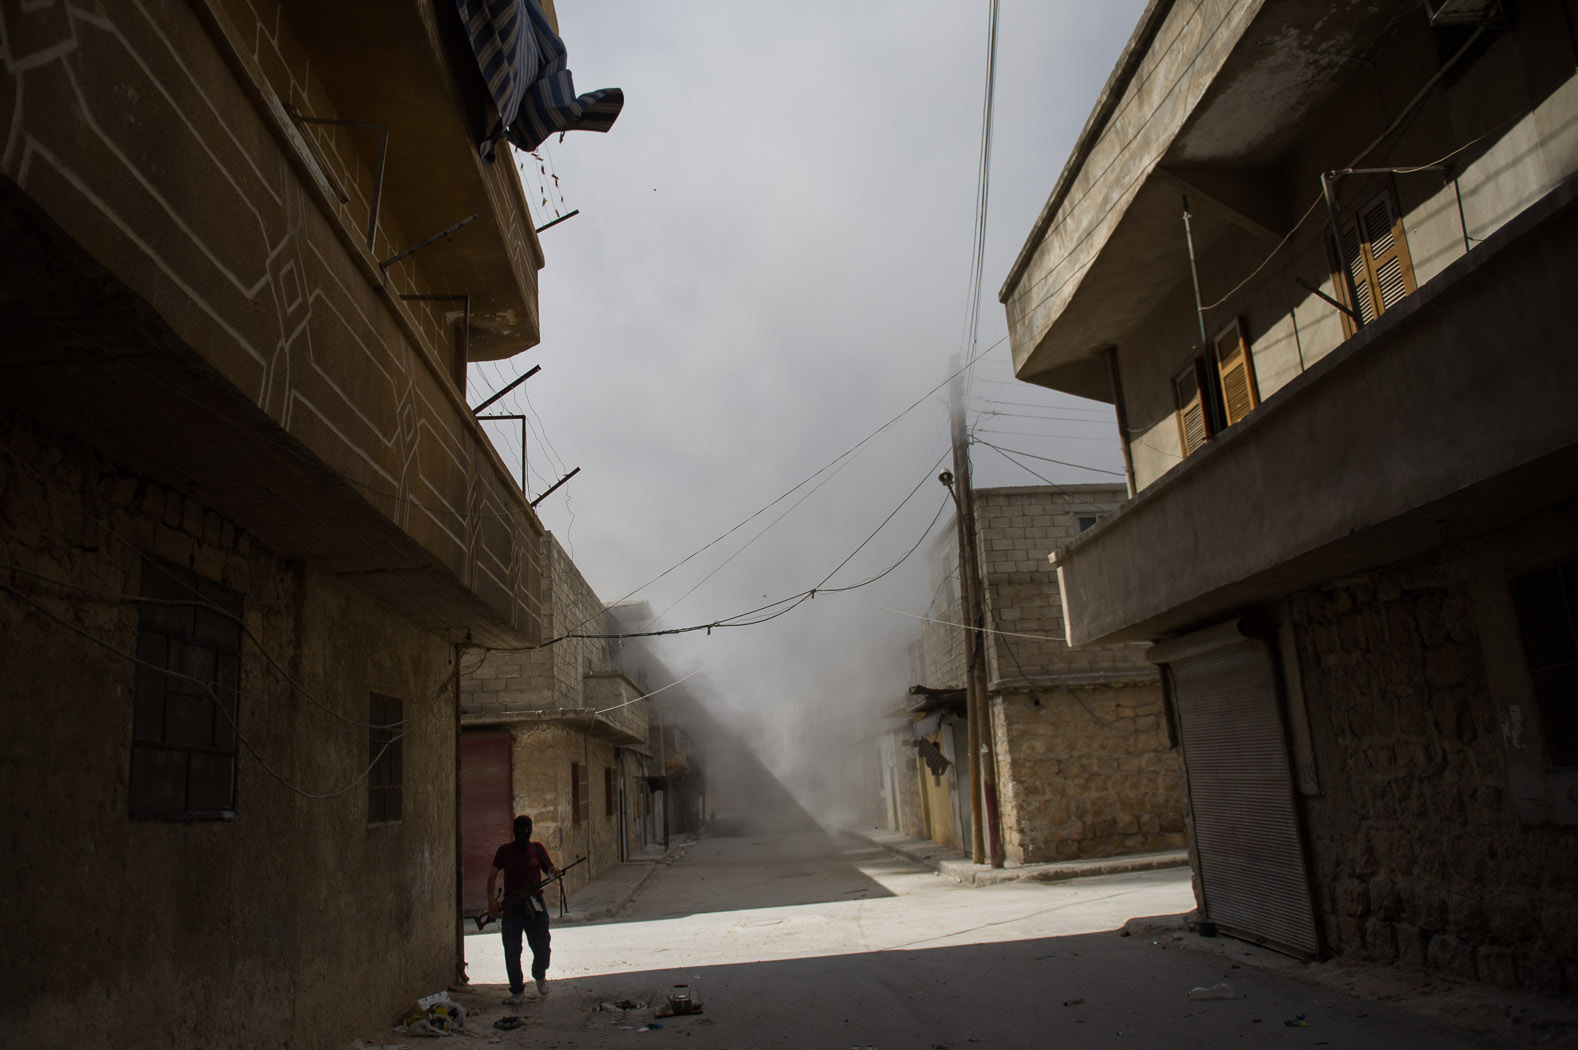 In August, the Salaheddine neighbourhood became the epicentre of the city's conflict. Shells rocked the narrow, residential streets on a daily basis.